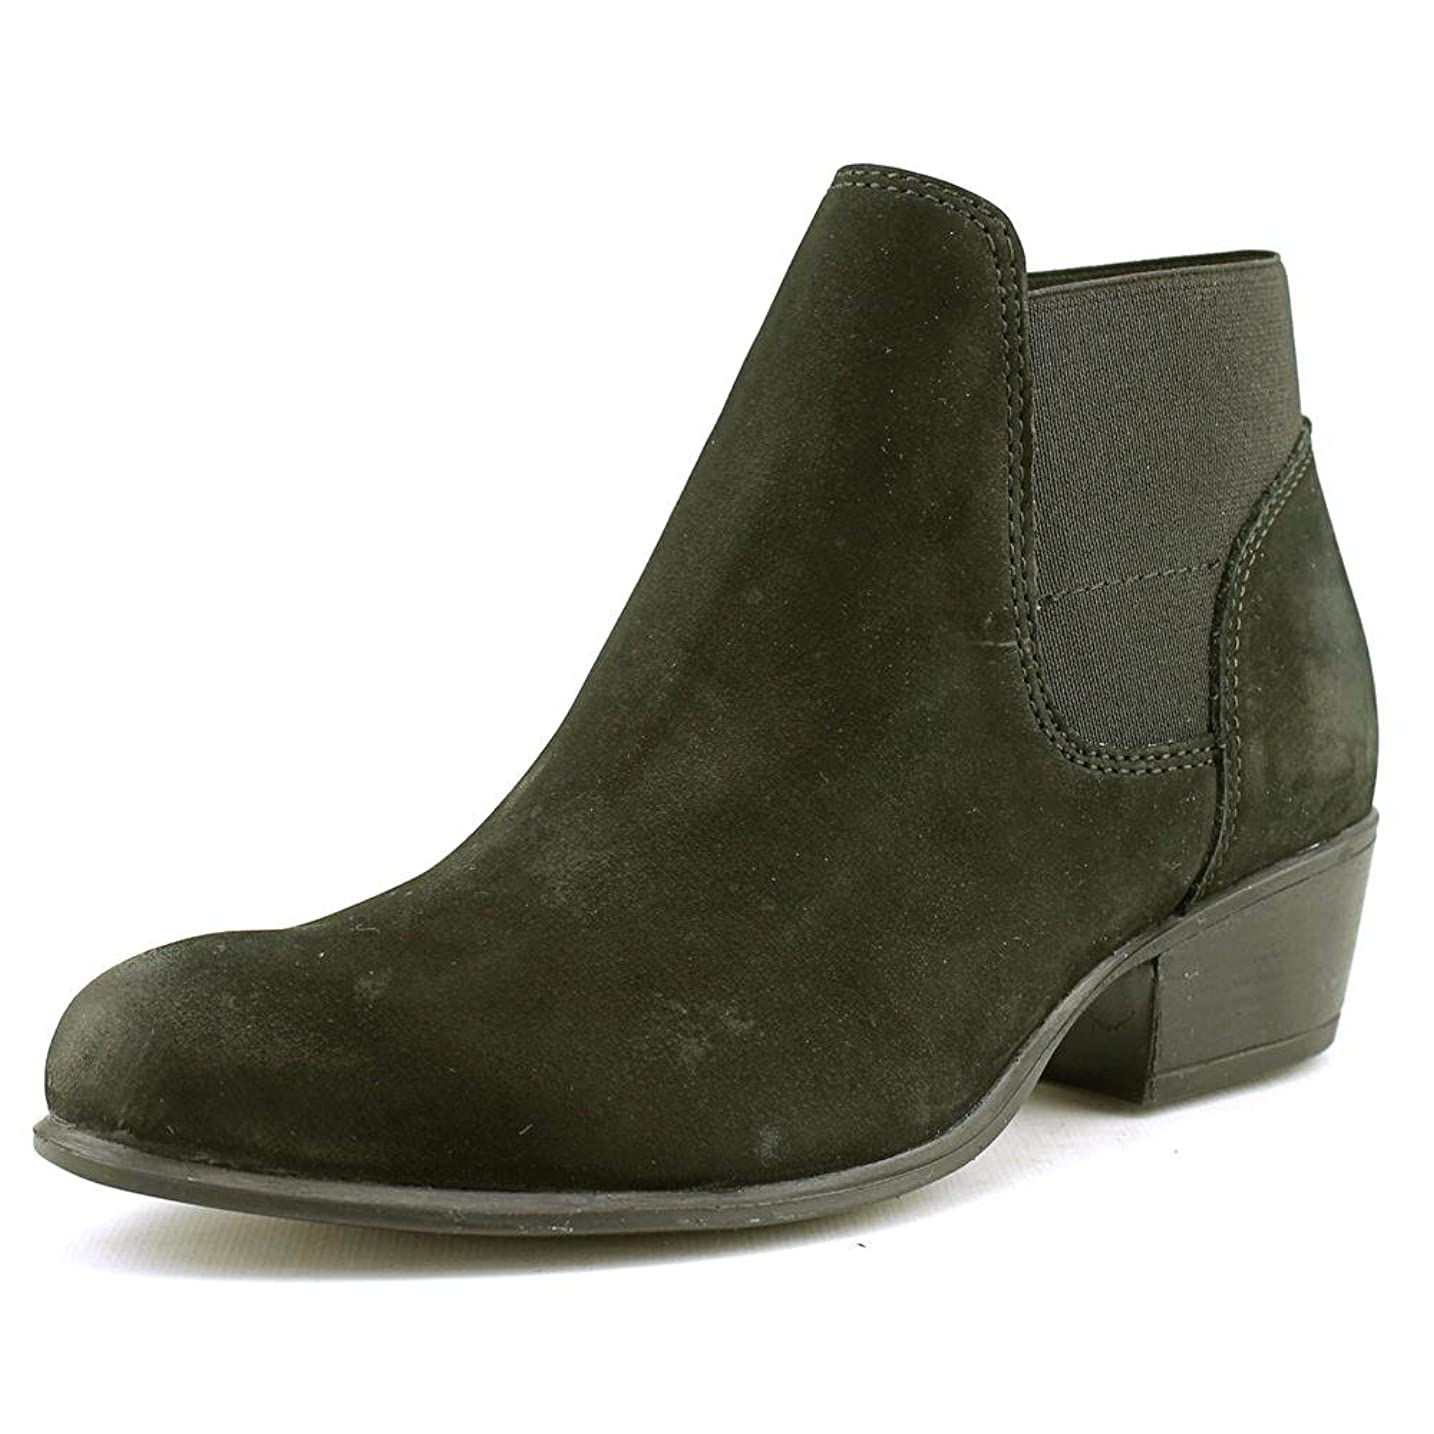 トレーダーアルコール入場料STEVEN by Steve Madden Womens Rozamare Closed Toe Fashion Boots